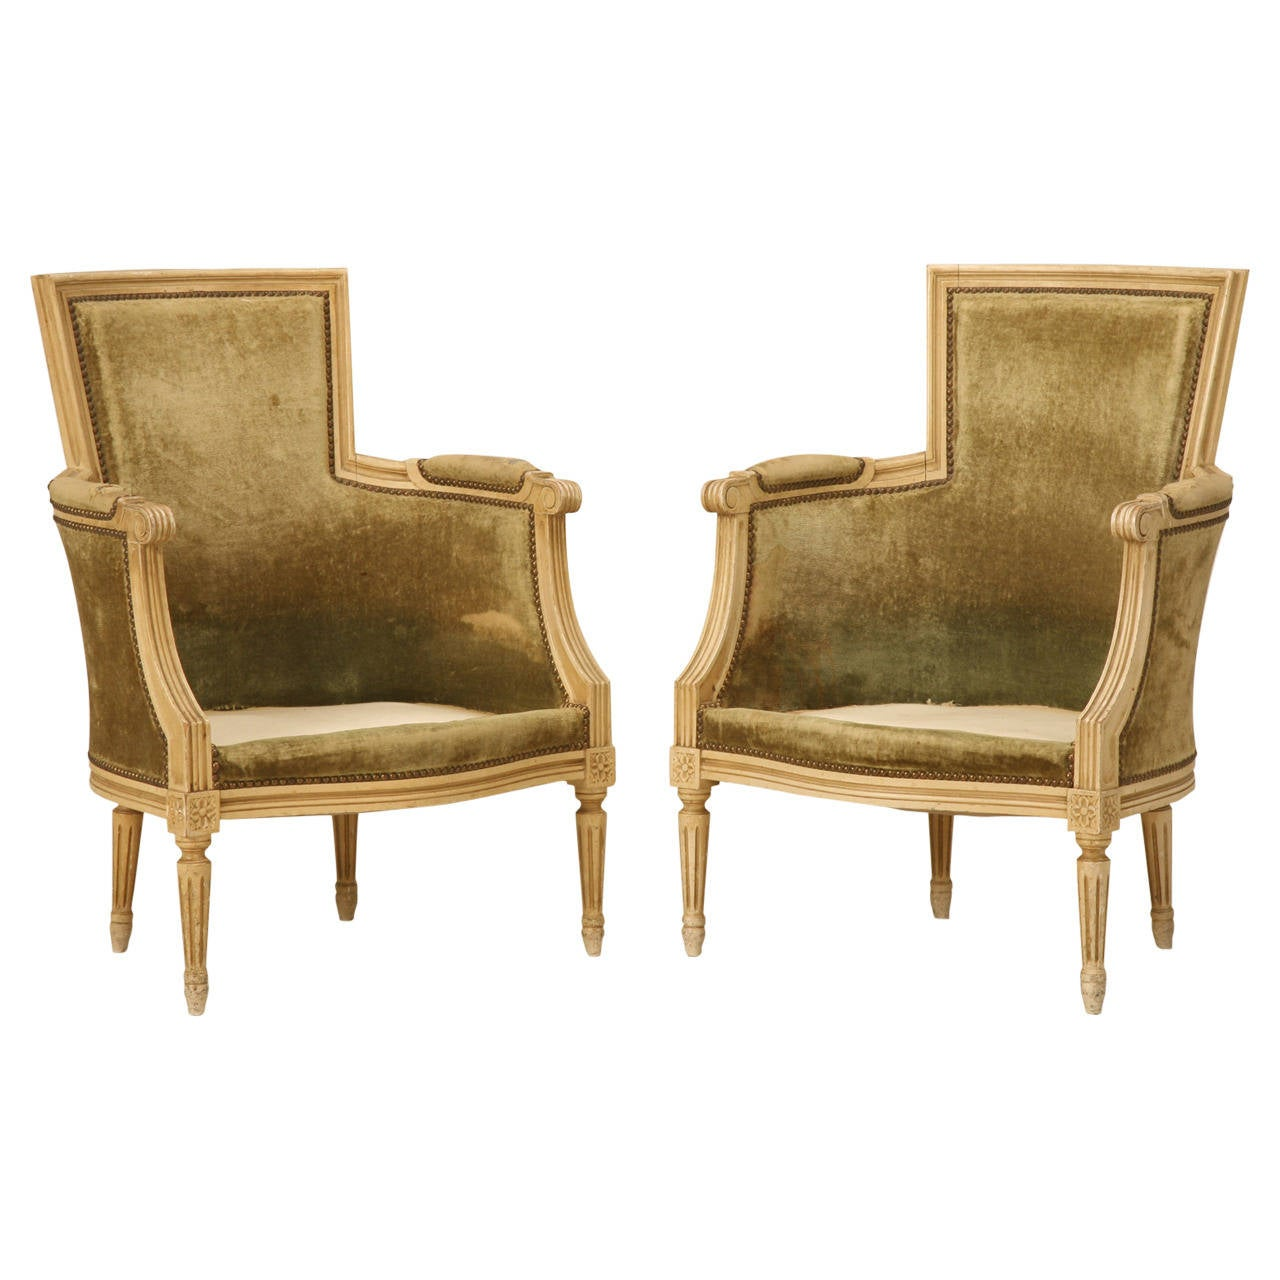 Louis XVI Style Bergere Chairs in Original Paint 1